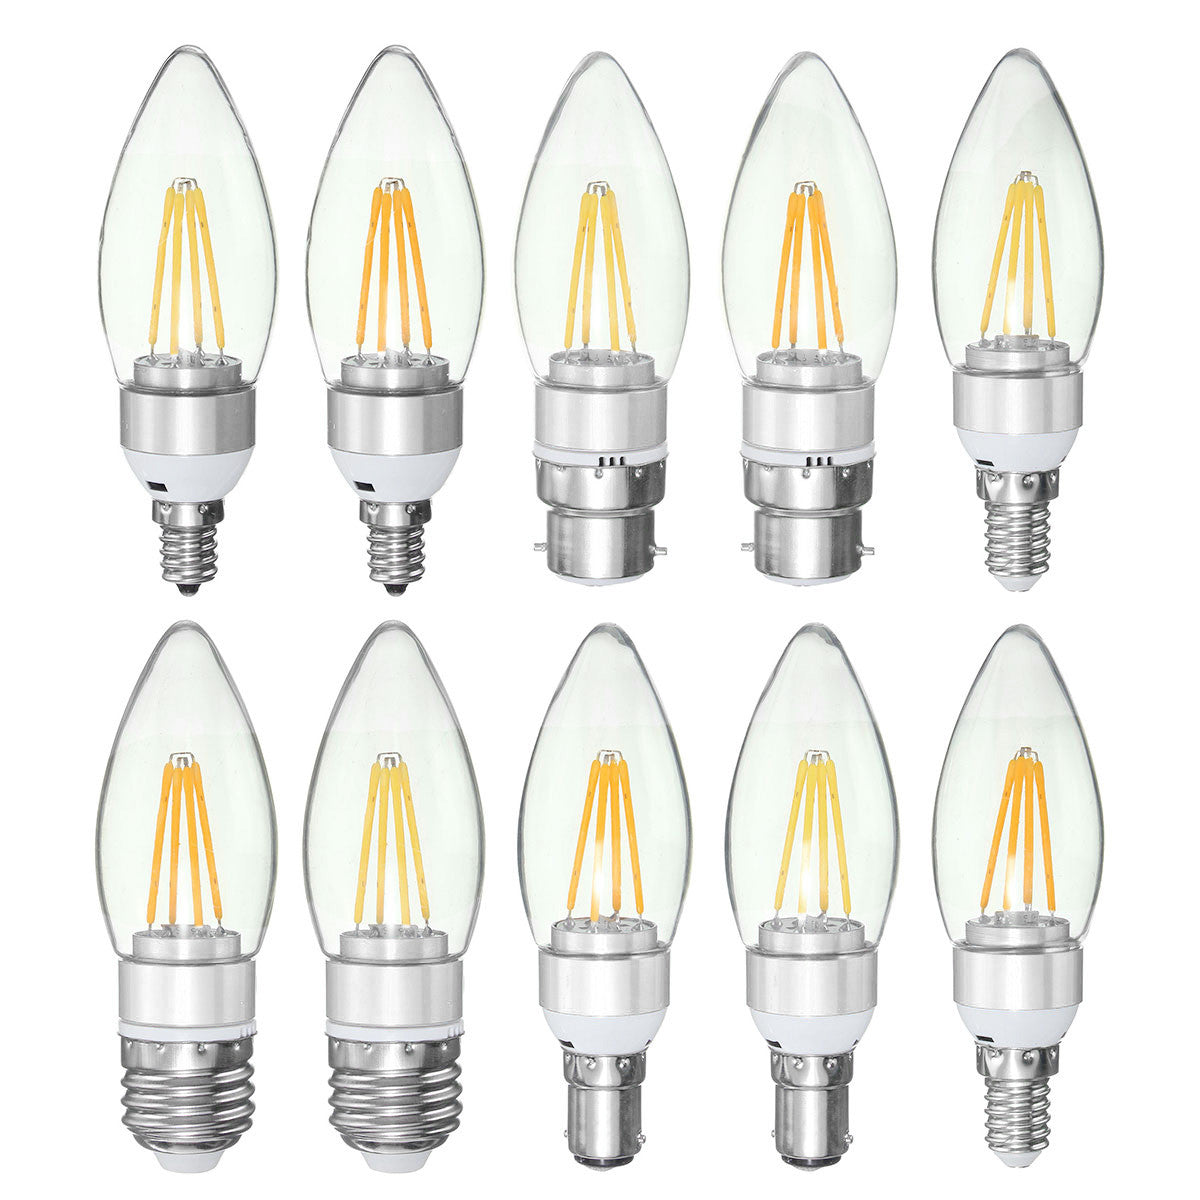 E27 E14 E12 B22 B15 3.5W 4leds LED Filament Pure White Warm White Home Light Lamp Bulb AC220V